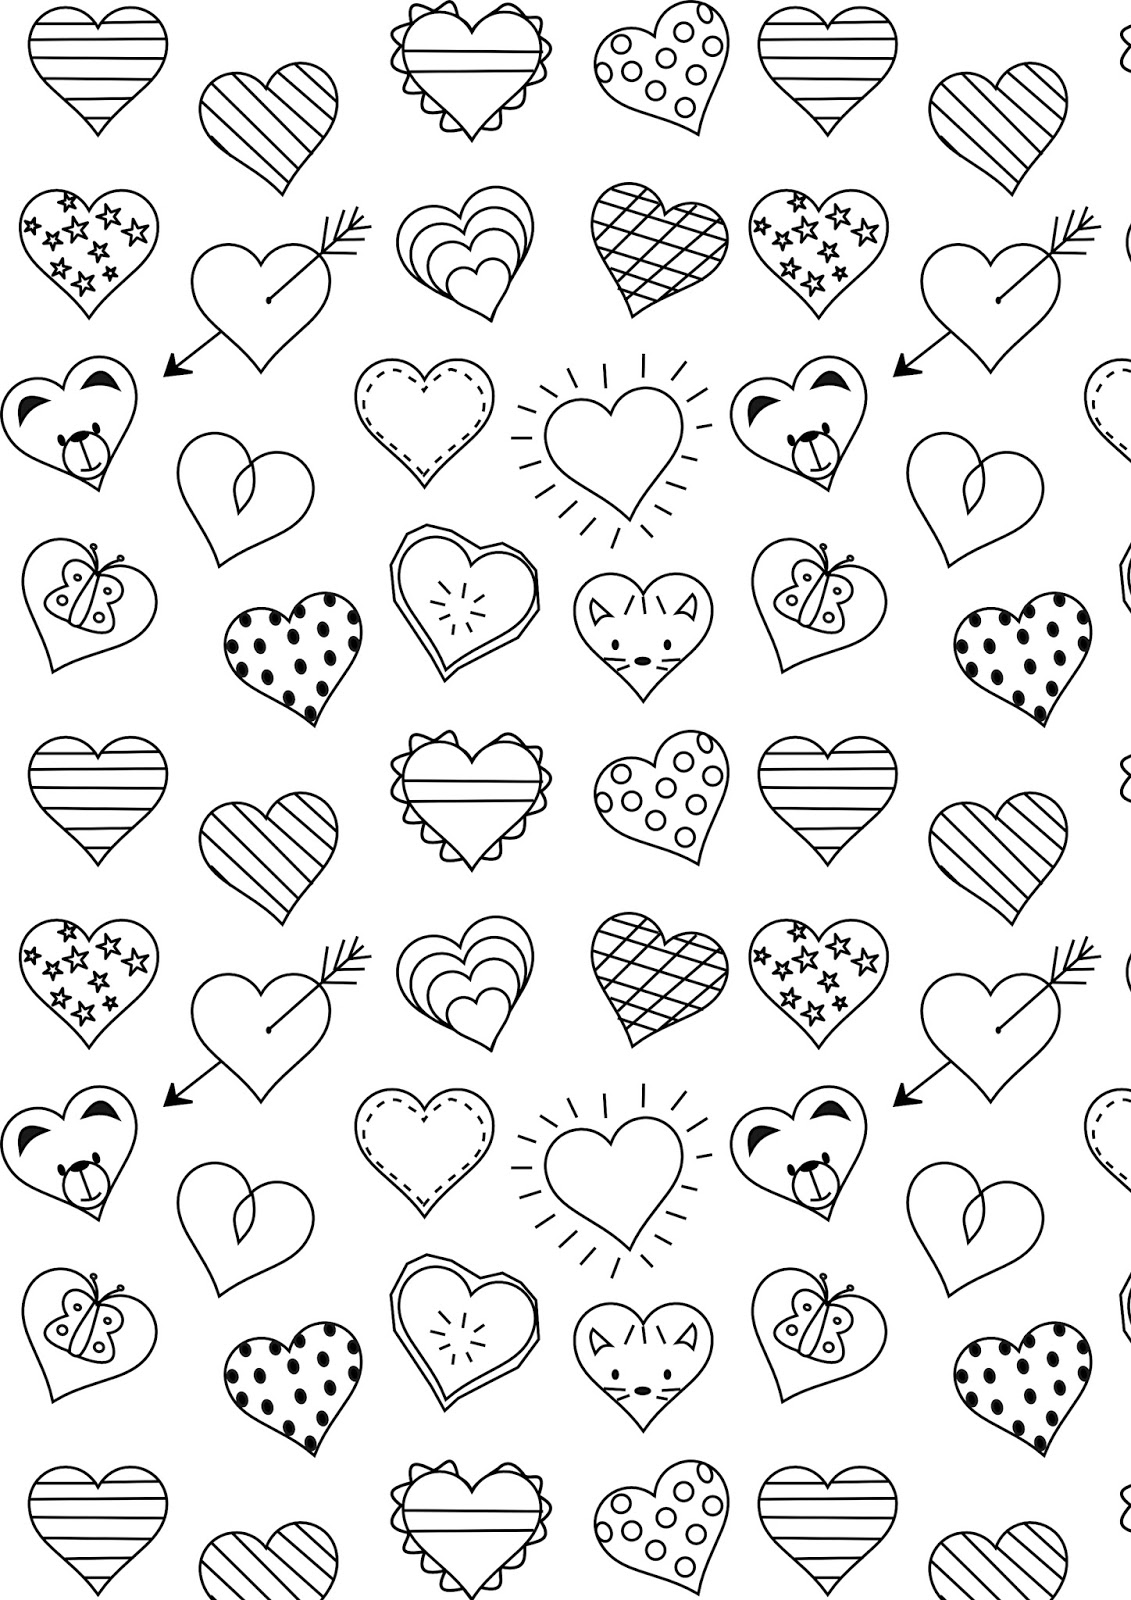 coloring heart for kids free printable heart coloring page ausdruckbare kids for coloring heart